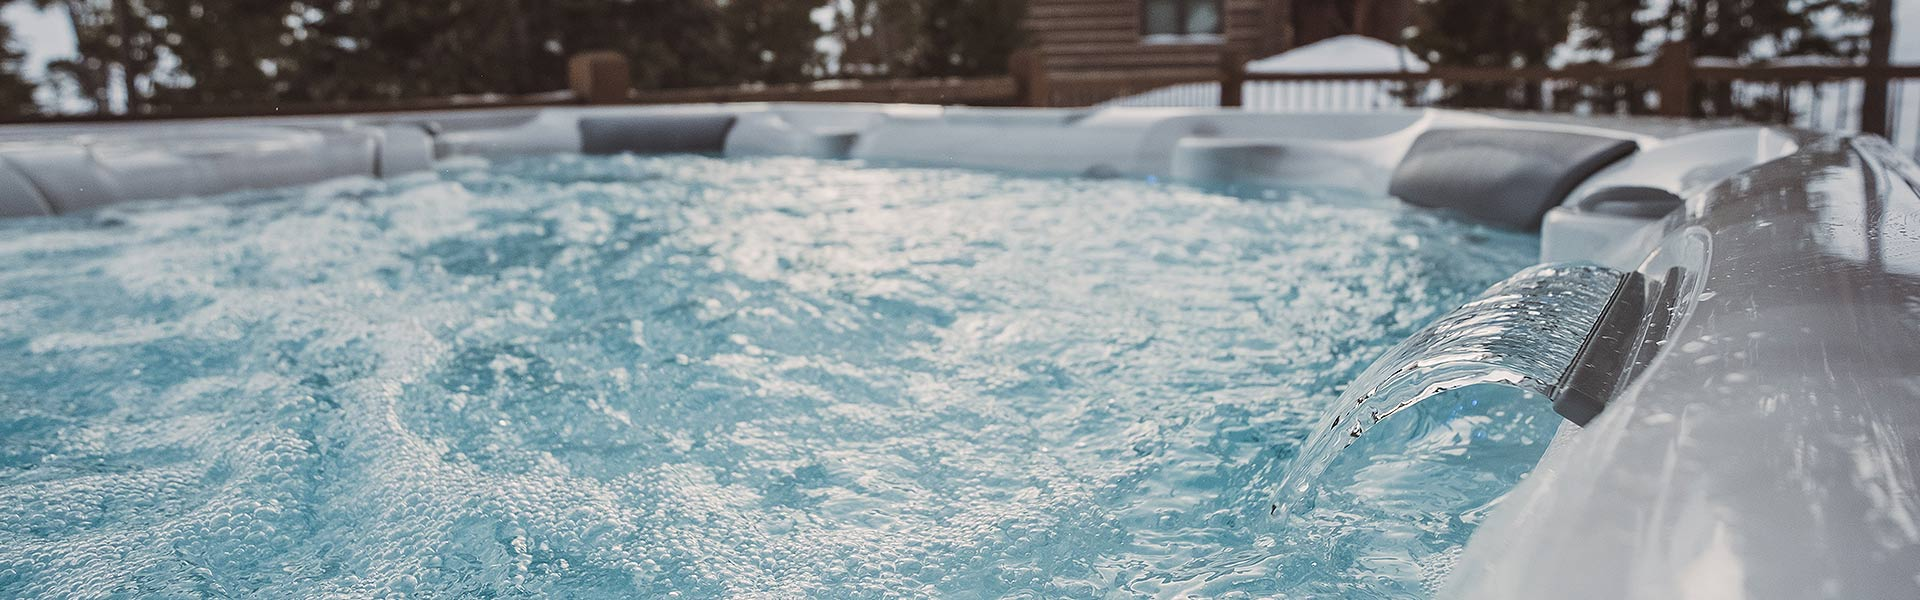 Rehabilitation for Knee Pain in Your Backyard Spa, Hot Tubs Manchester MO